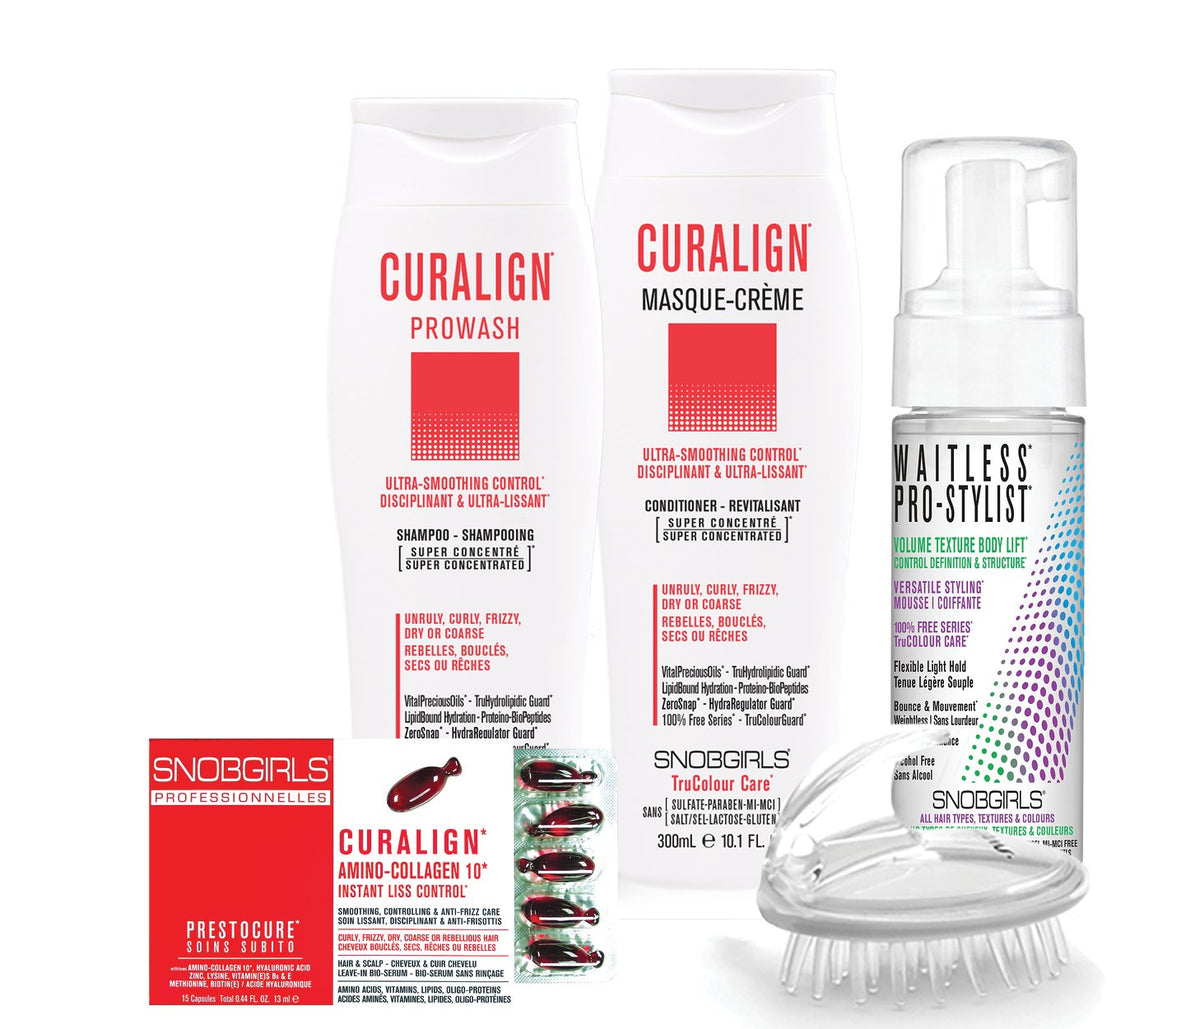 CURALIGN BOX ULTRA-SMOOTHING CONTROL Bundle - SNOBGIRLS Canada